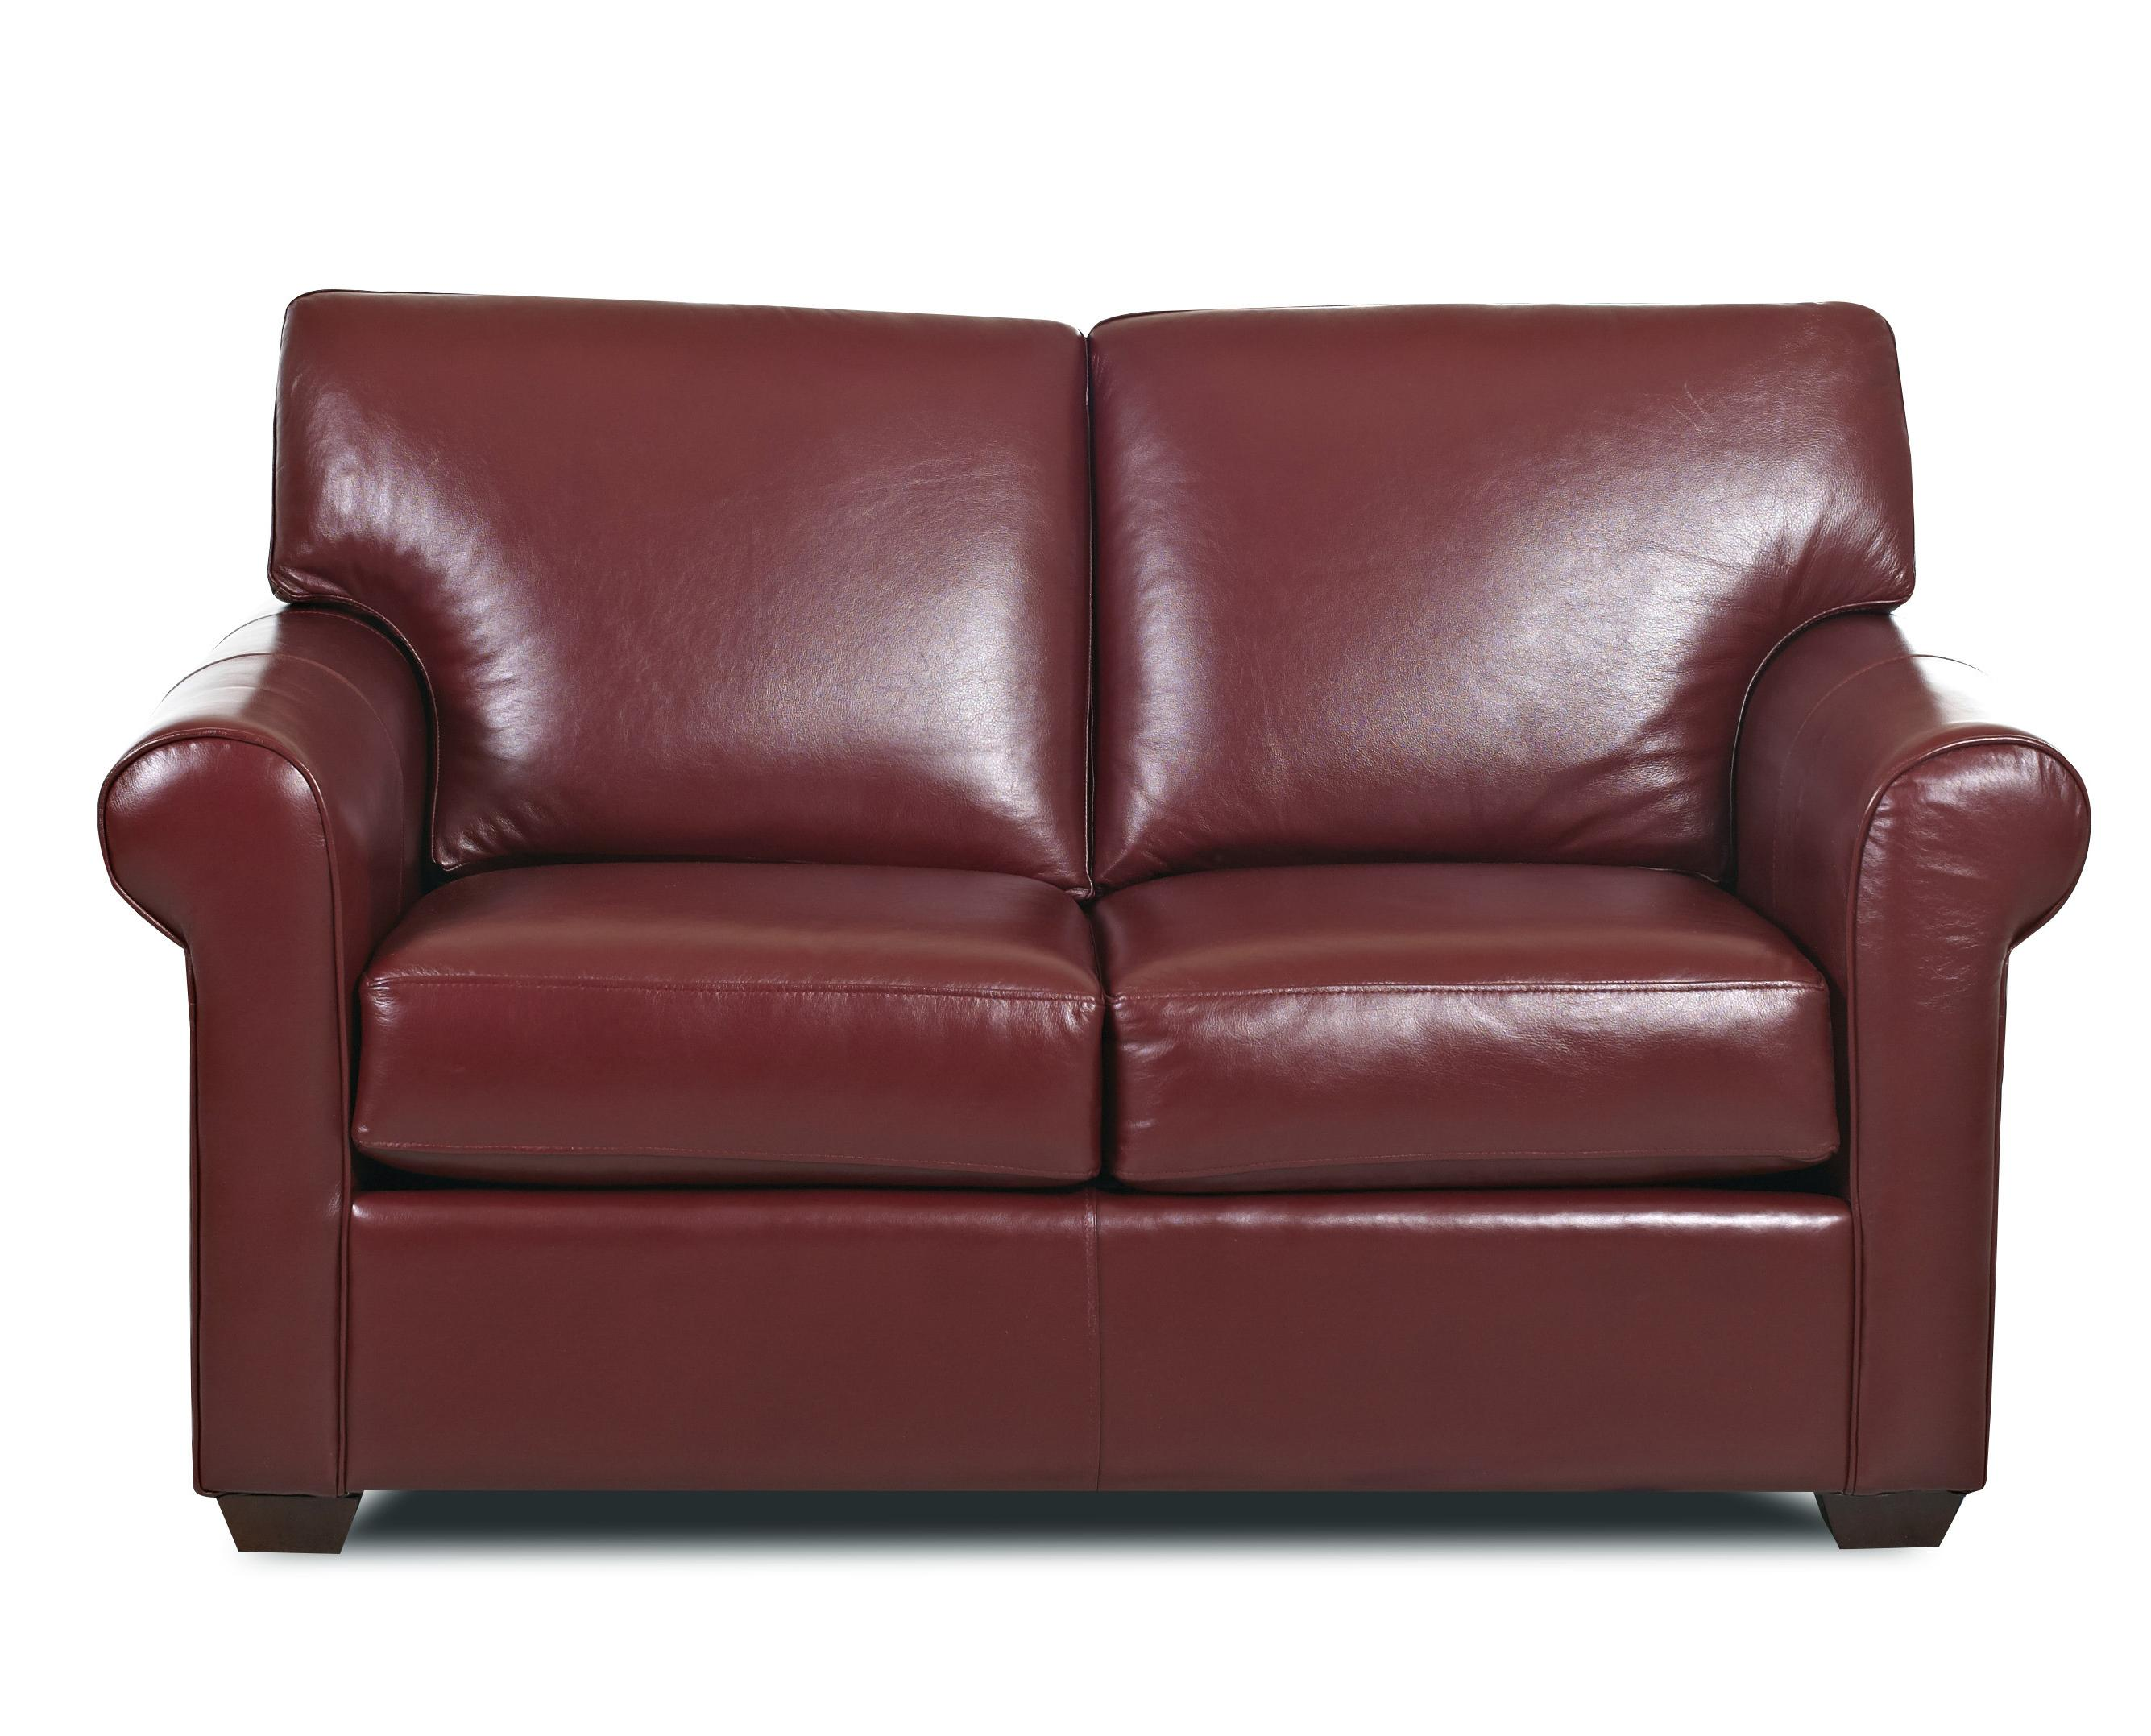 Canoy Transitional Loveseat by Klaussner at Johnny Janosik